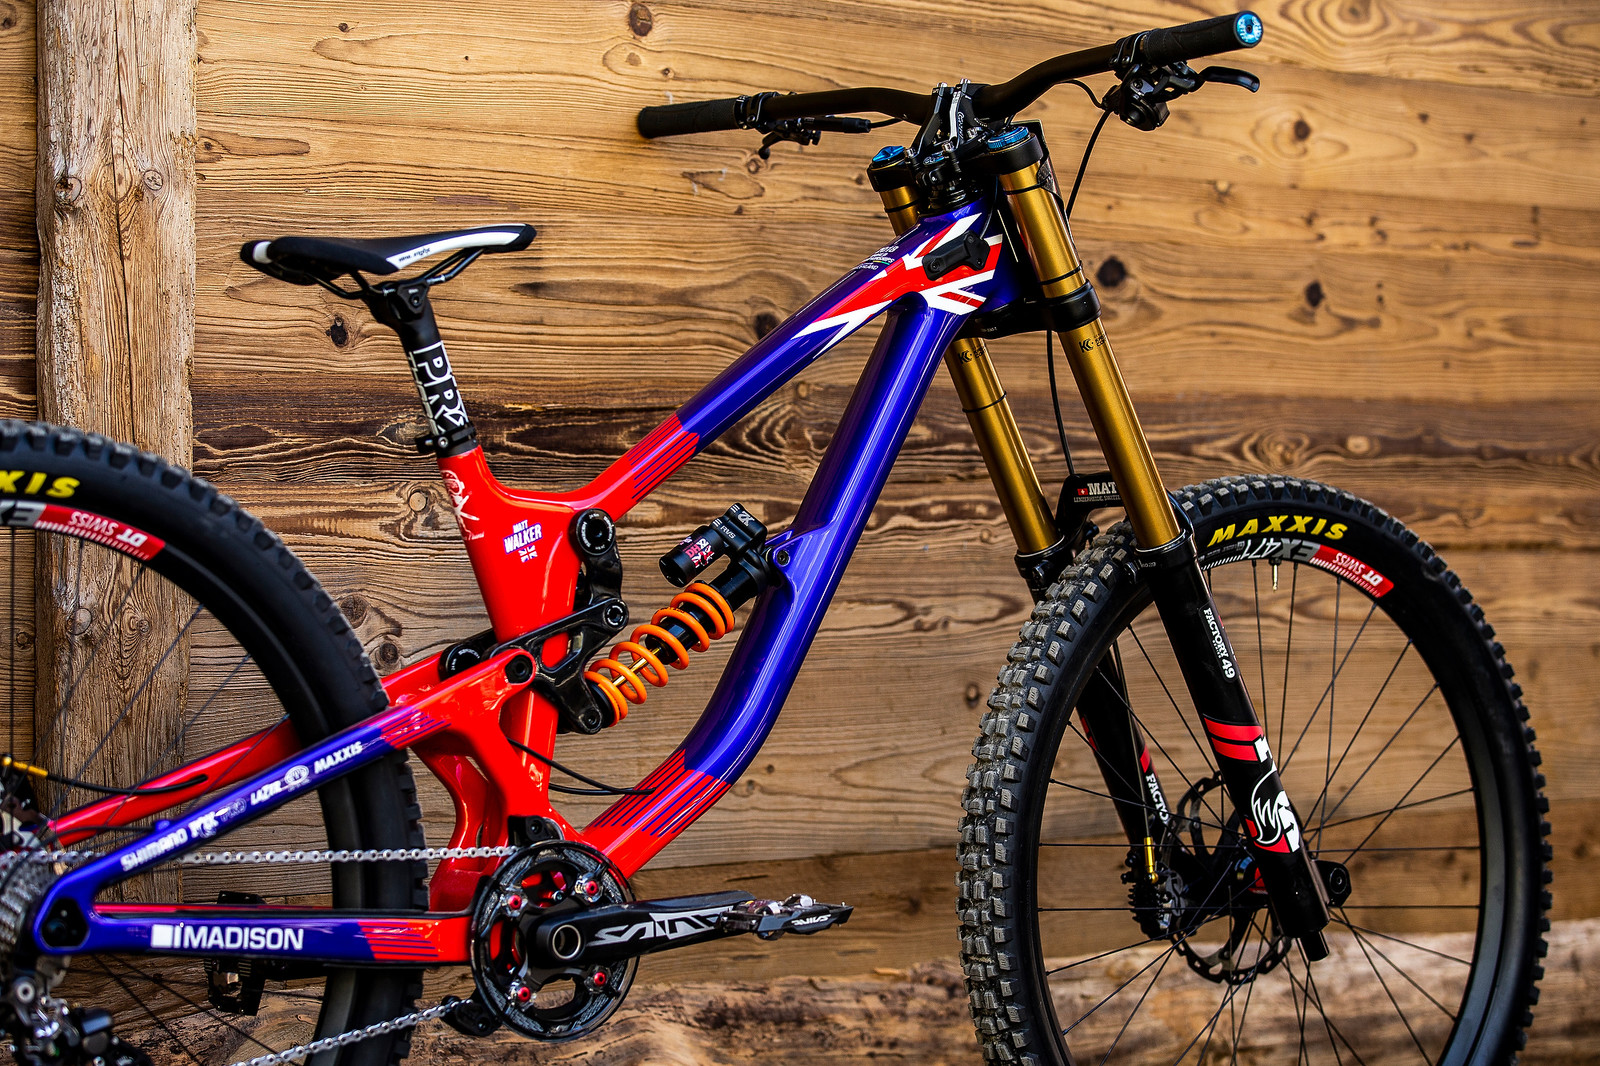 Clean Lines - WORLD CHAMPS BIKE - Matt Walker's Saracen Myst - Mountain Biking Pictures - Vital MTB